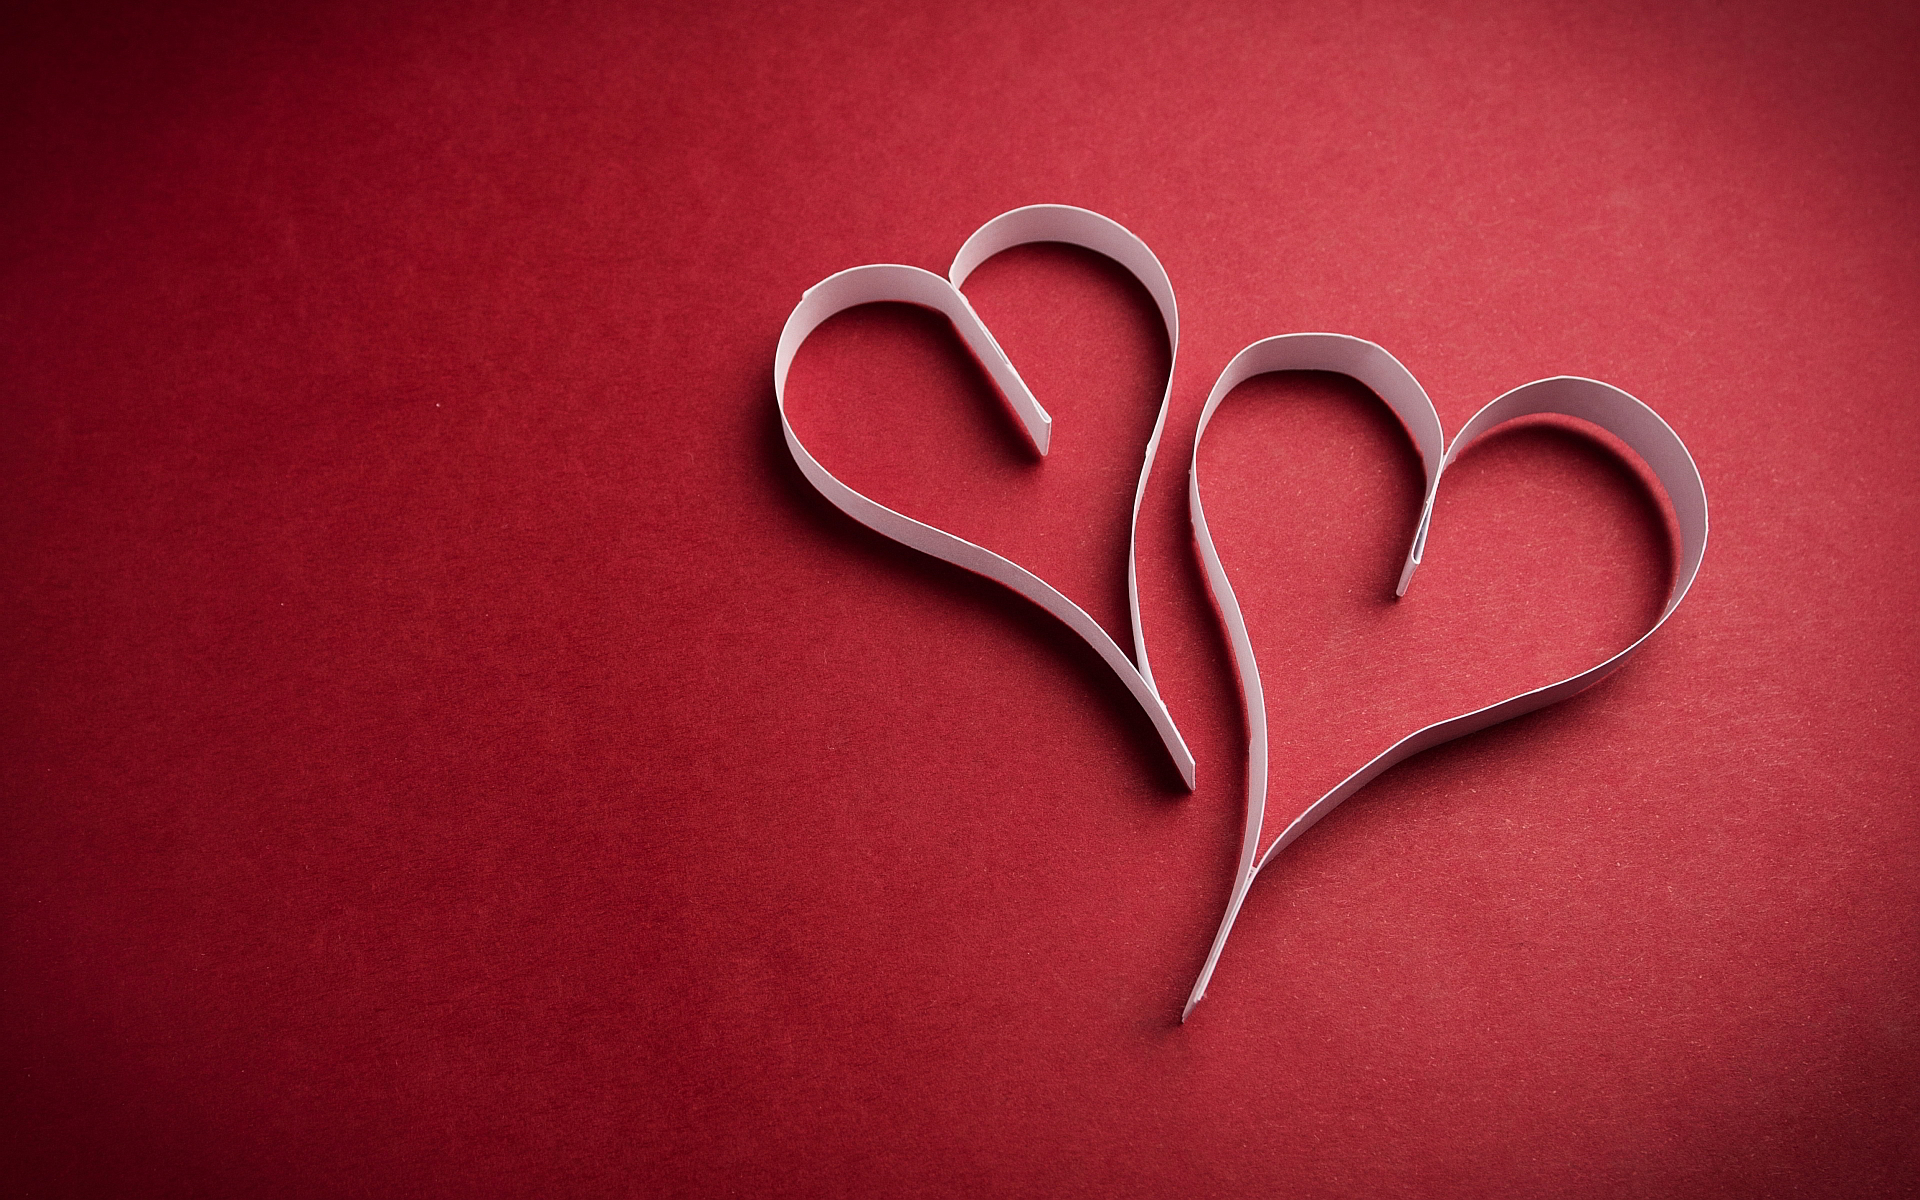 Love Wallpaper Backgrounds Romantic Wallpapers HD To Say I Love You 1920x1200